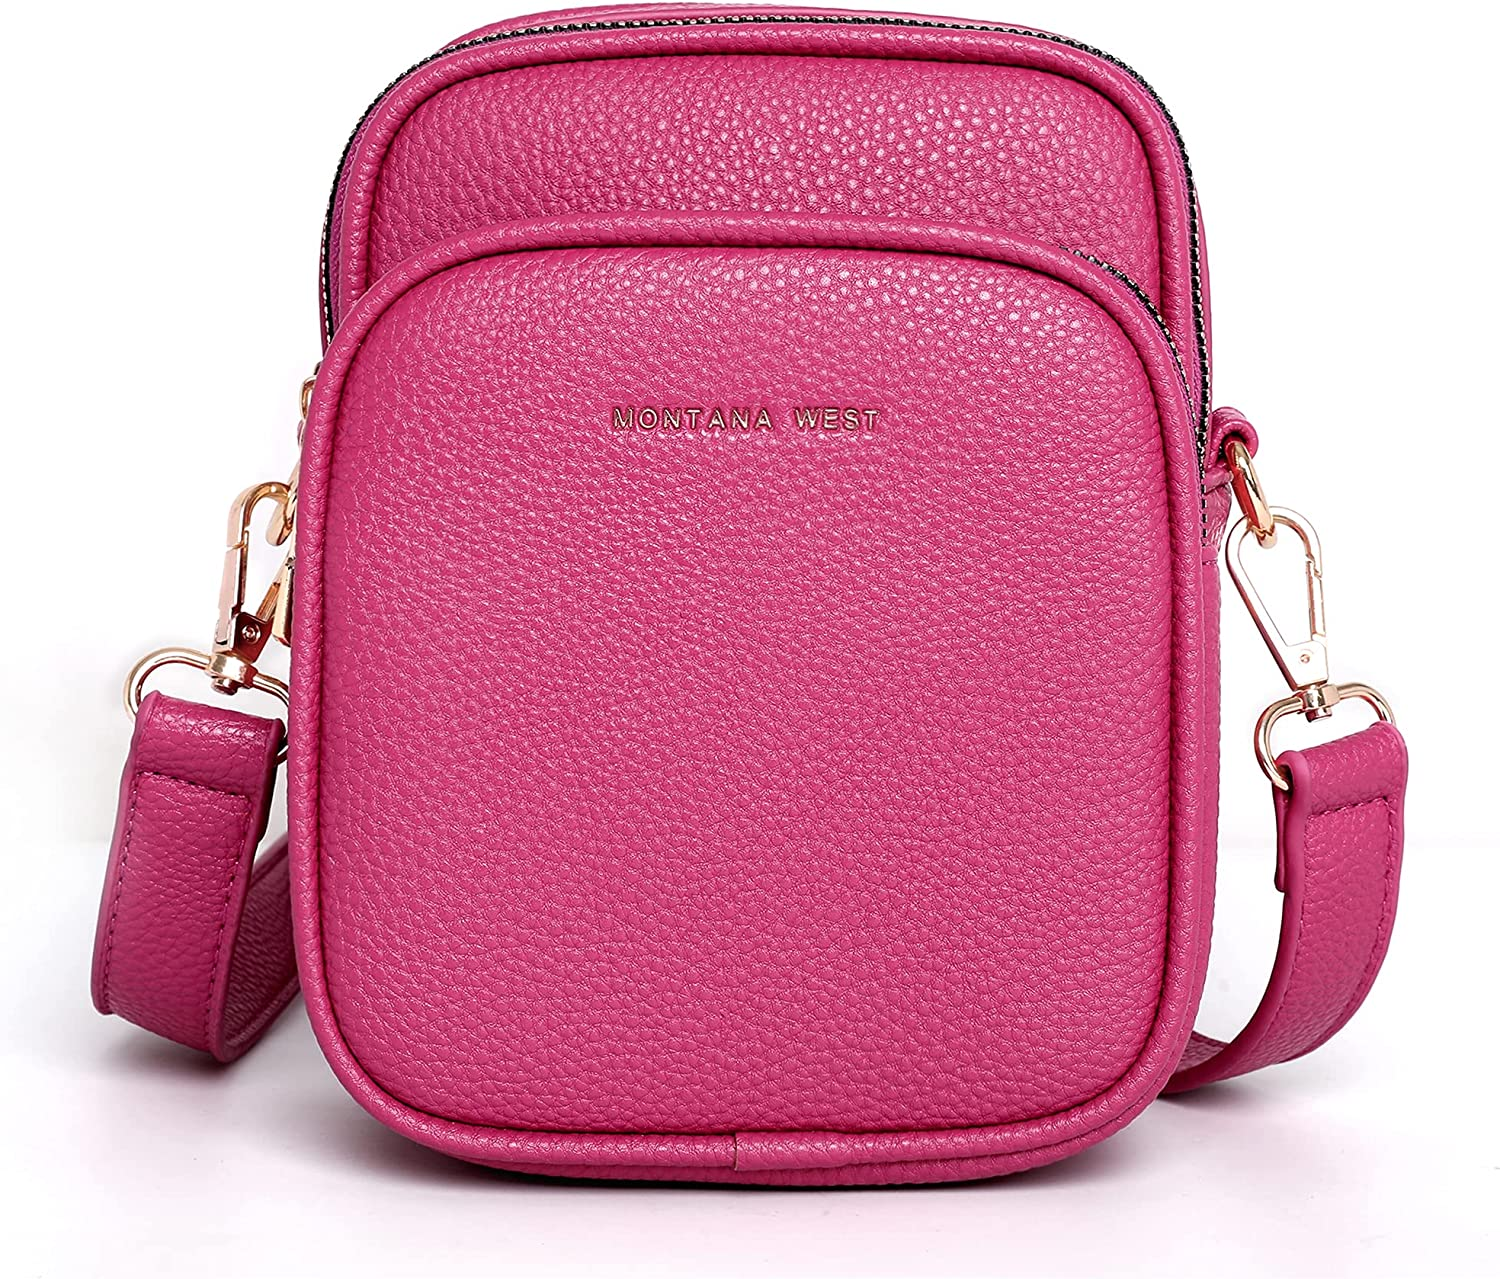 Montana West Small Crossbody Bags for Women Leather Multi Pockets Cell Phone Purse Casual Handbags